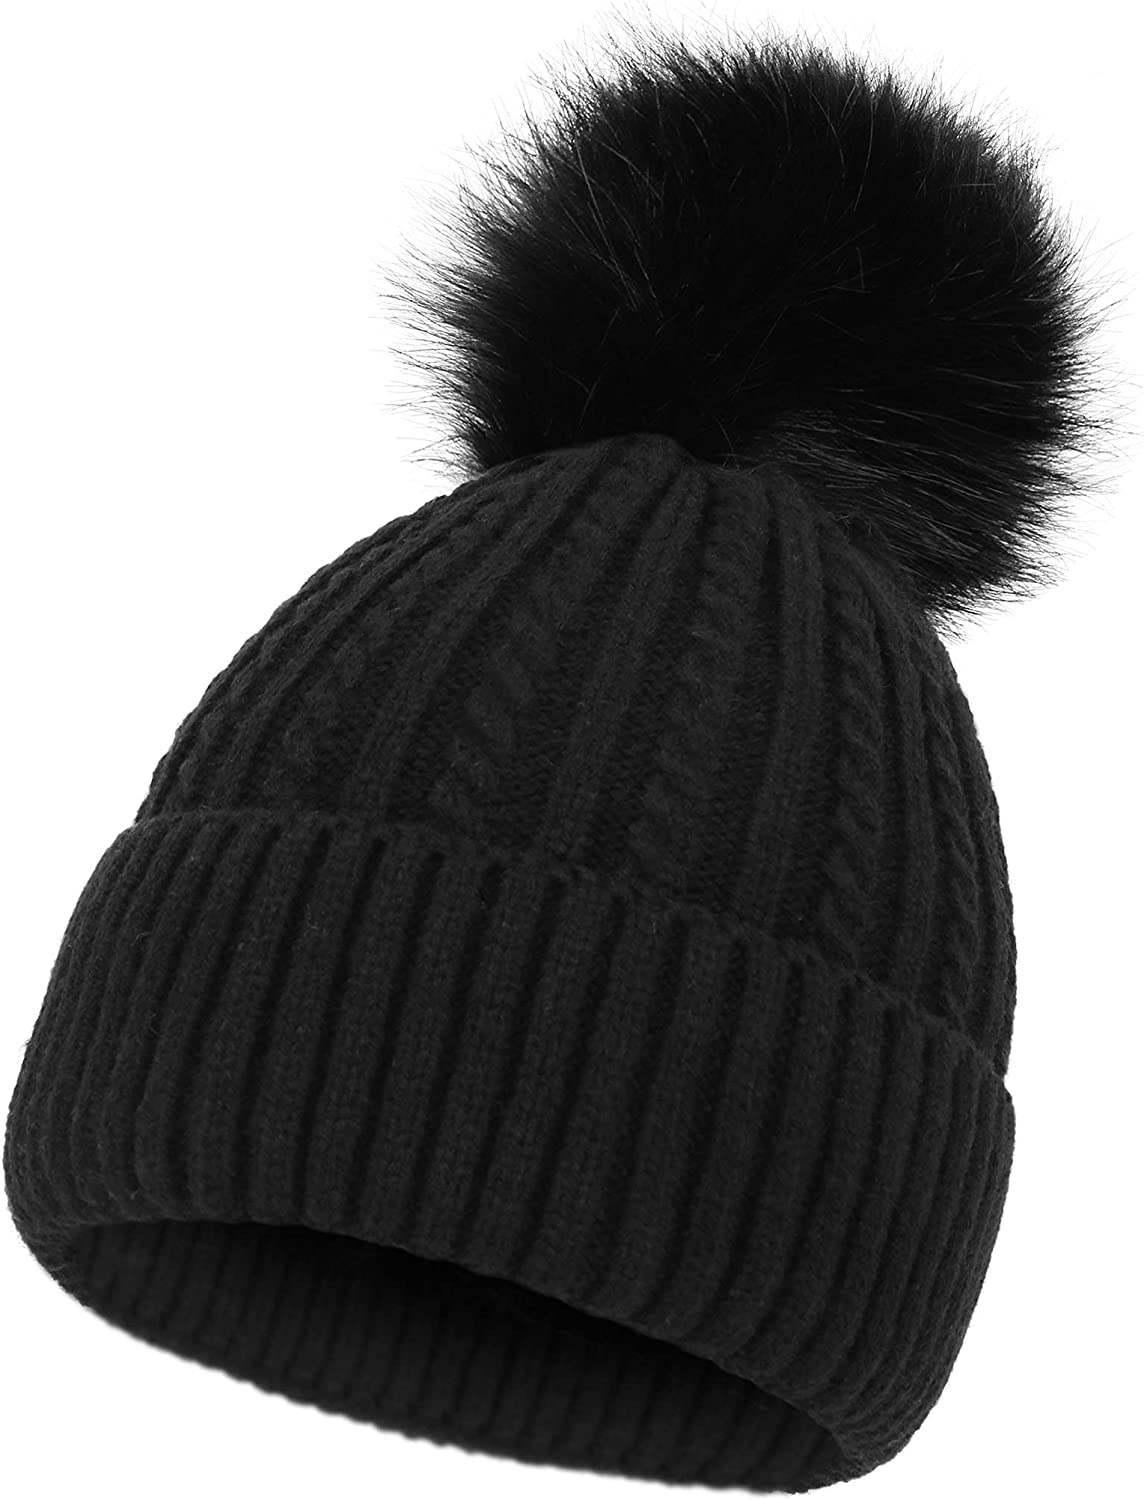 Great interest Simplicity Womens Beanie Hat Spring new work one after another Winter Lined Fleece Warm Cable